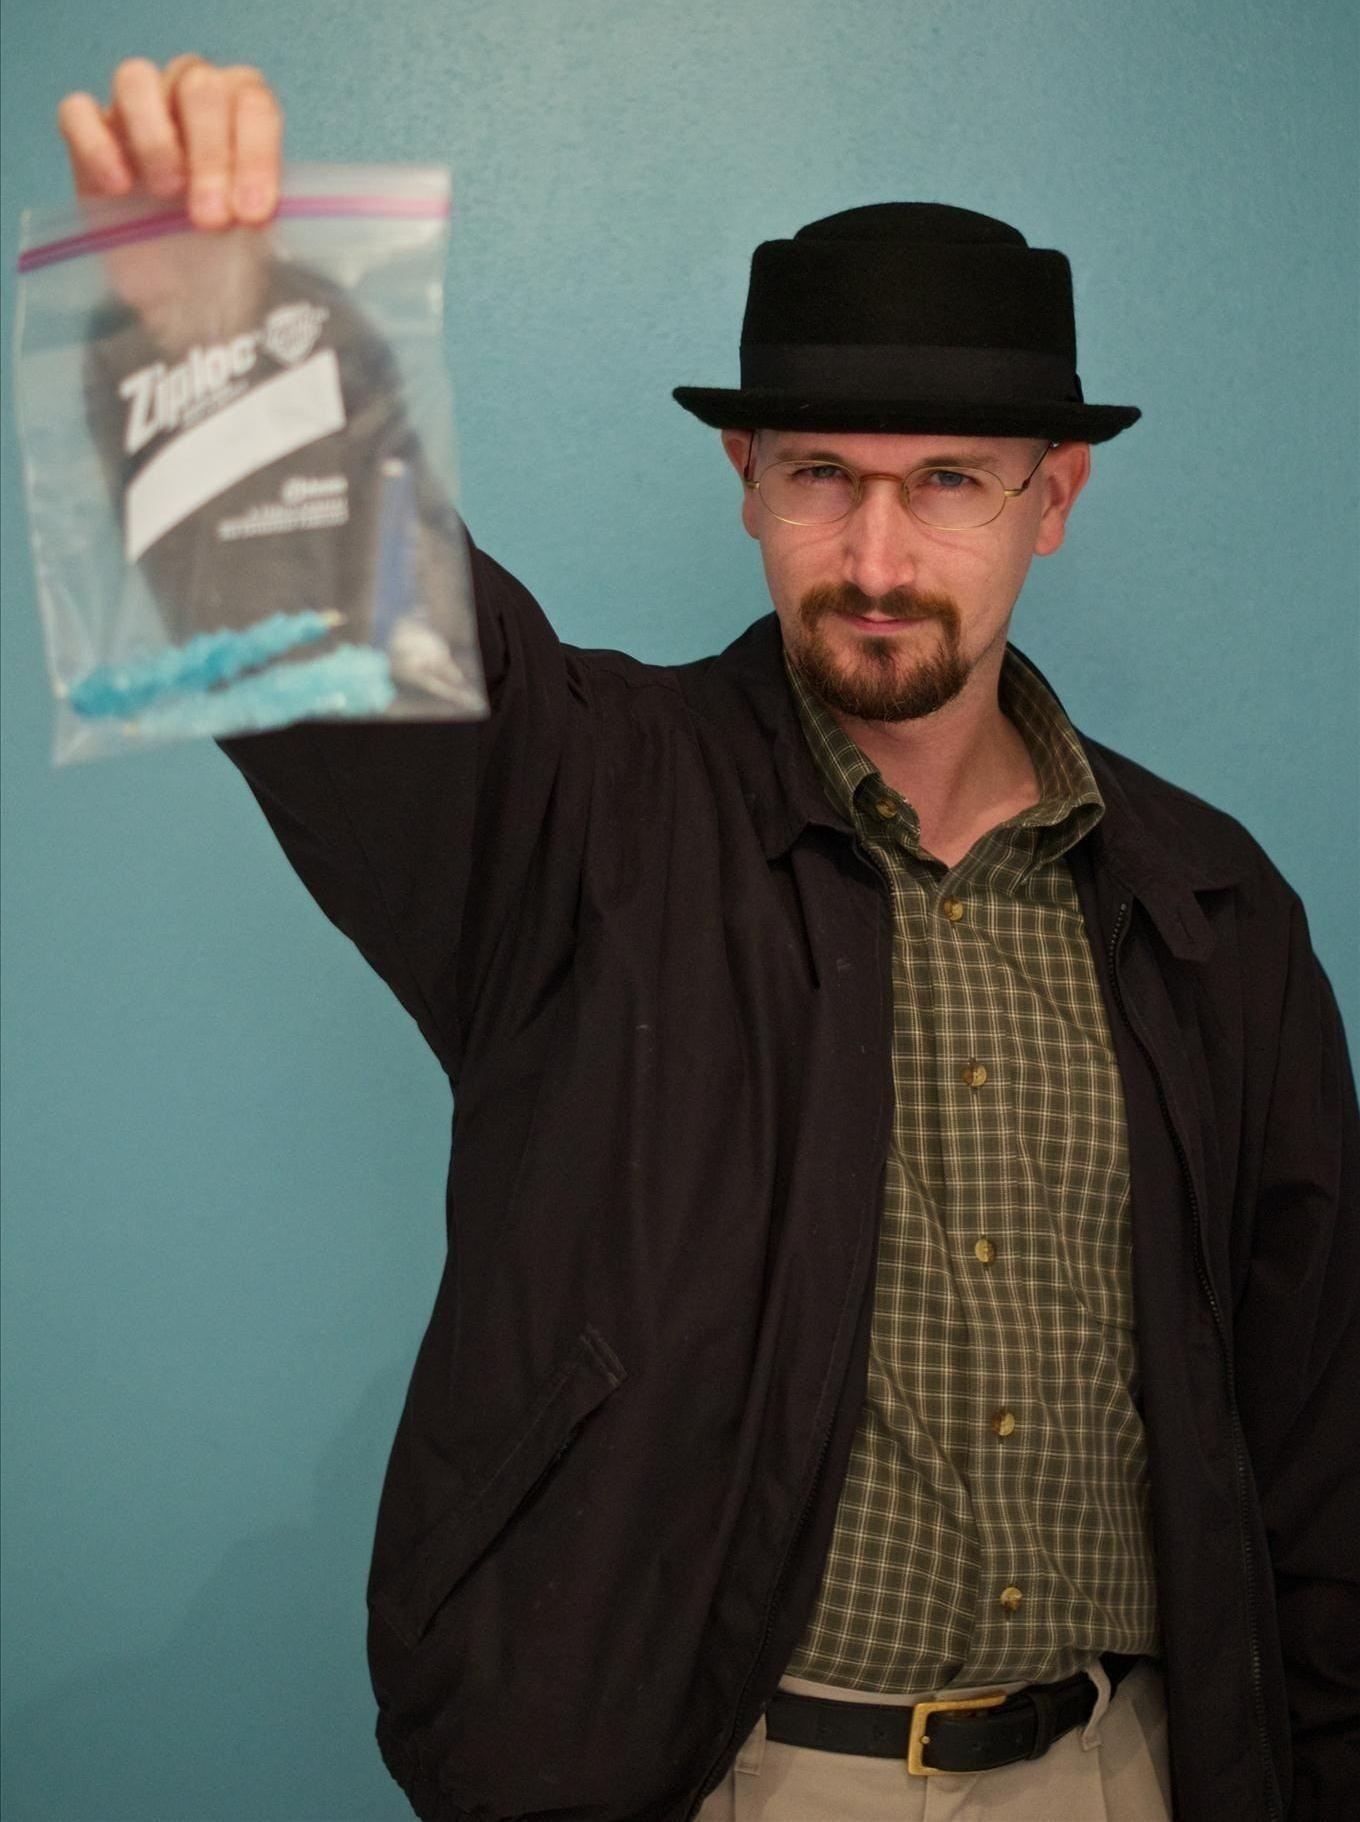 breaking bad costume ideas for halloween, plus how to make your own